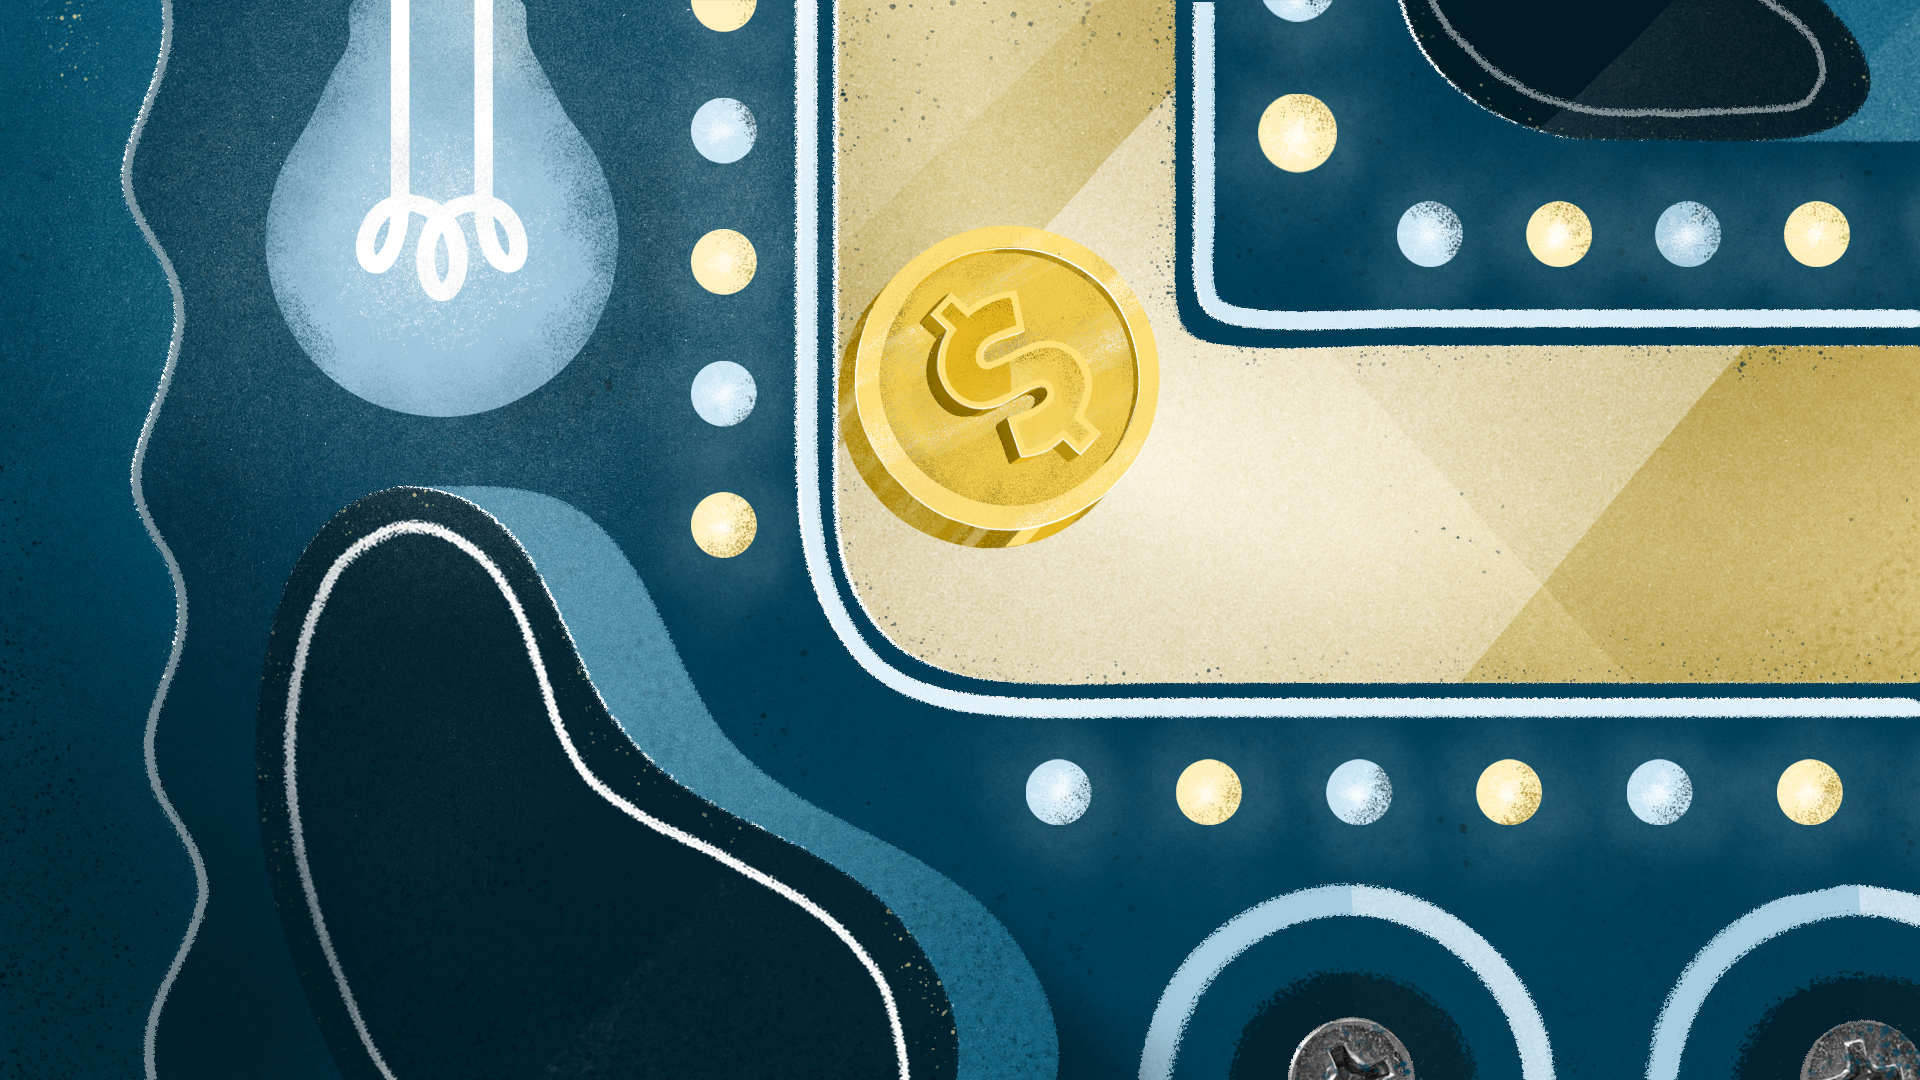 PINBALL_SCENE_01_01_ANIMATION.png